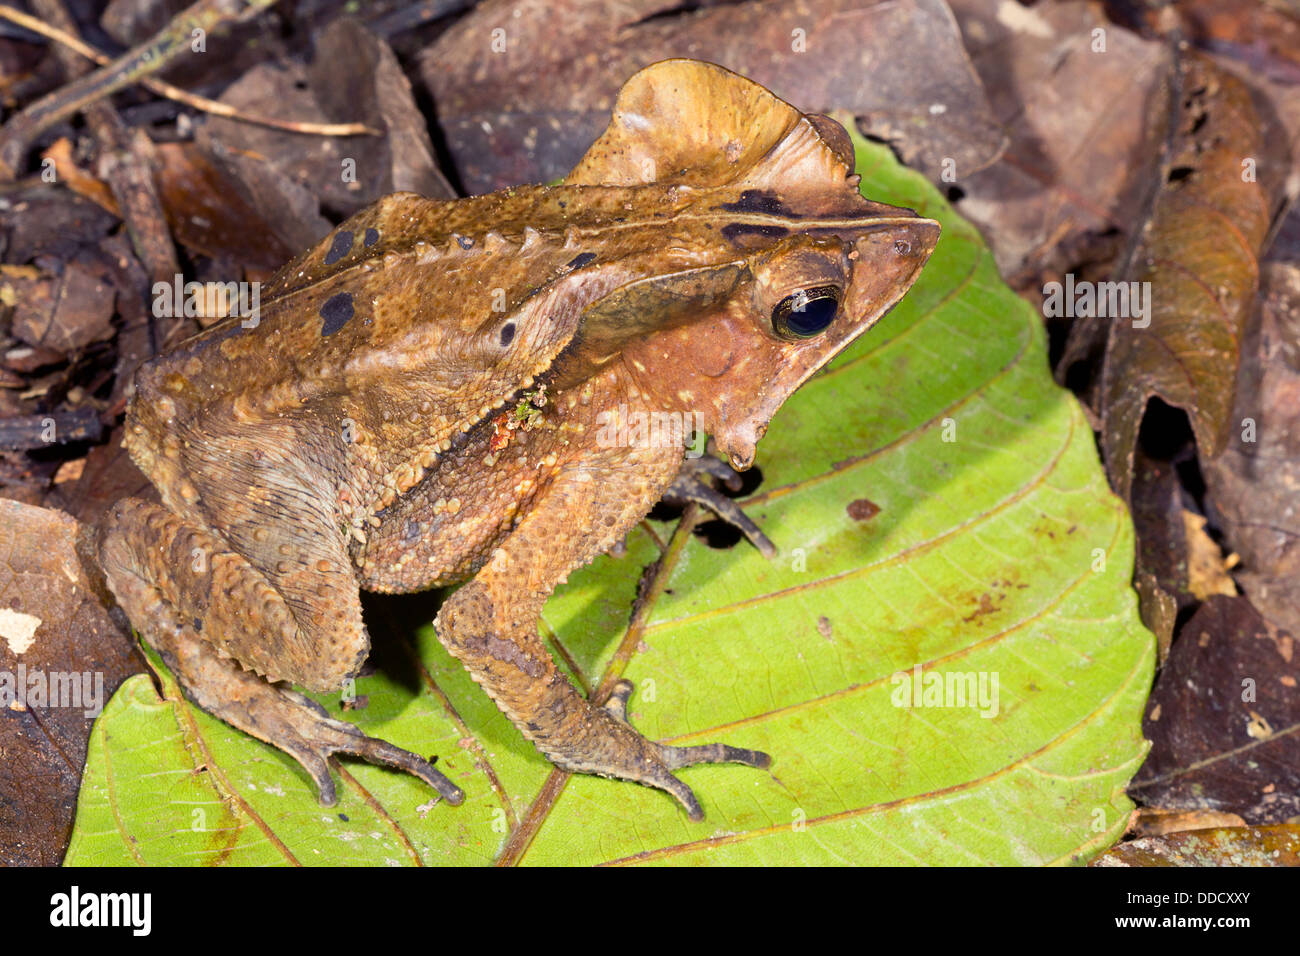 Crested Forest Toad (Rhinella margaritifer) on the rainforest floor, Ecuador - Stock Image